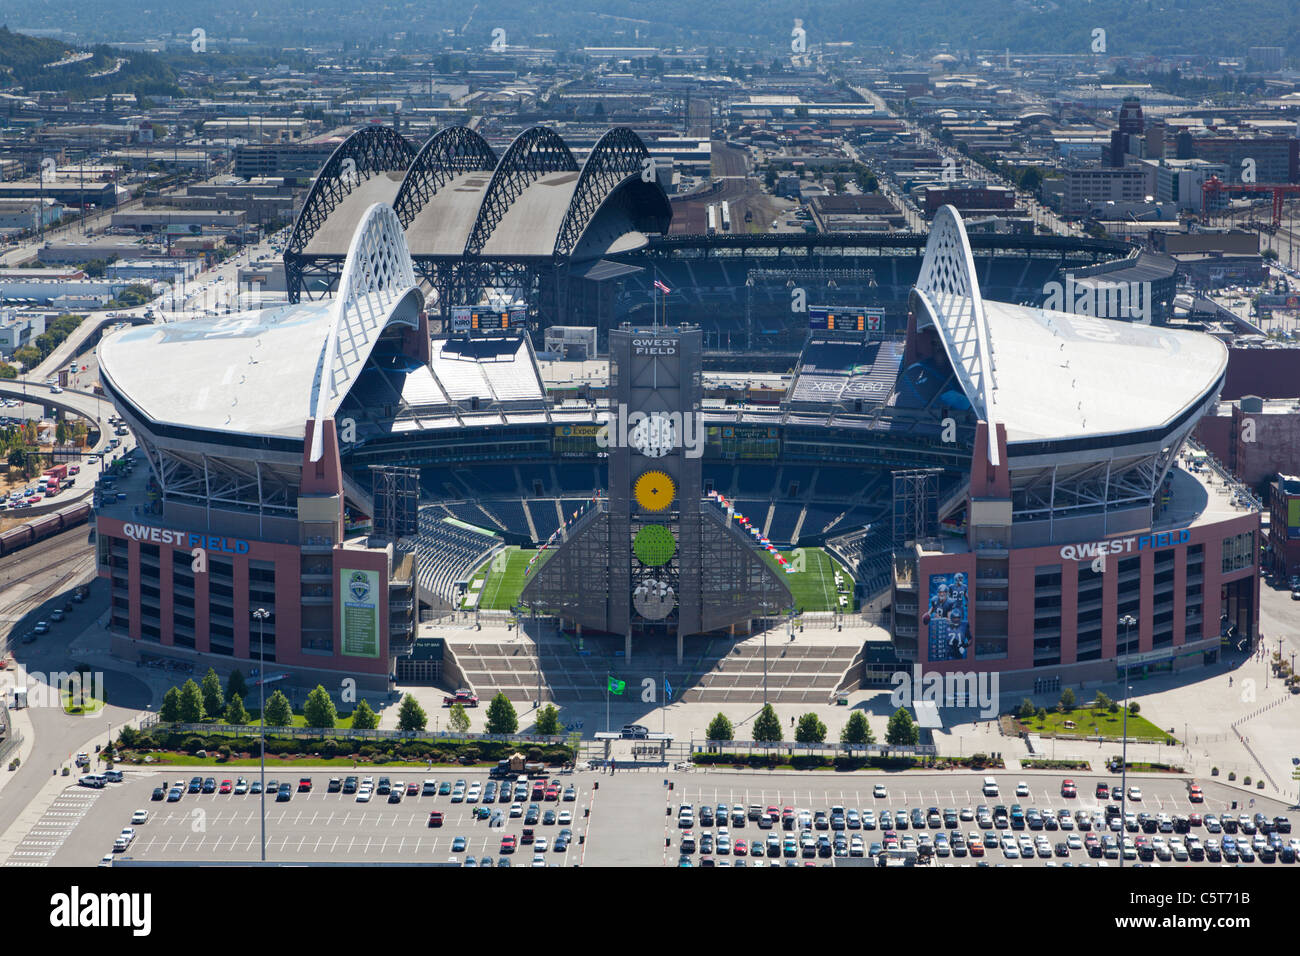 Seahawks Stadium High Resolution Stock Photography And Images Alamy